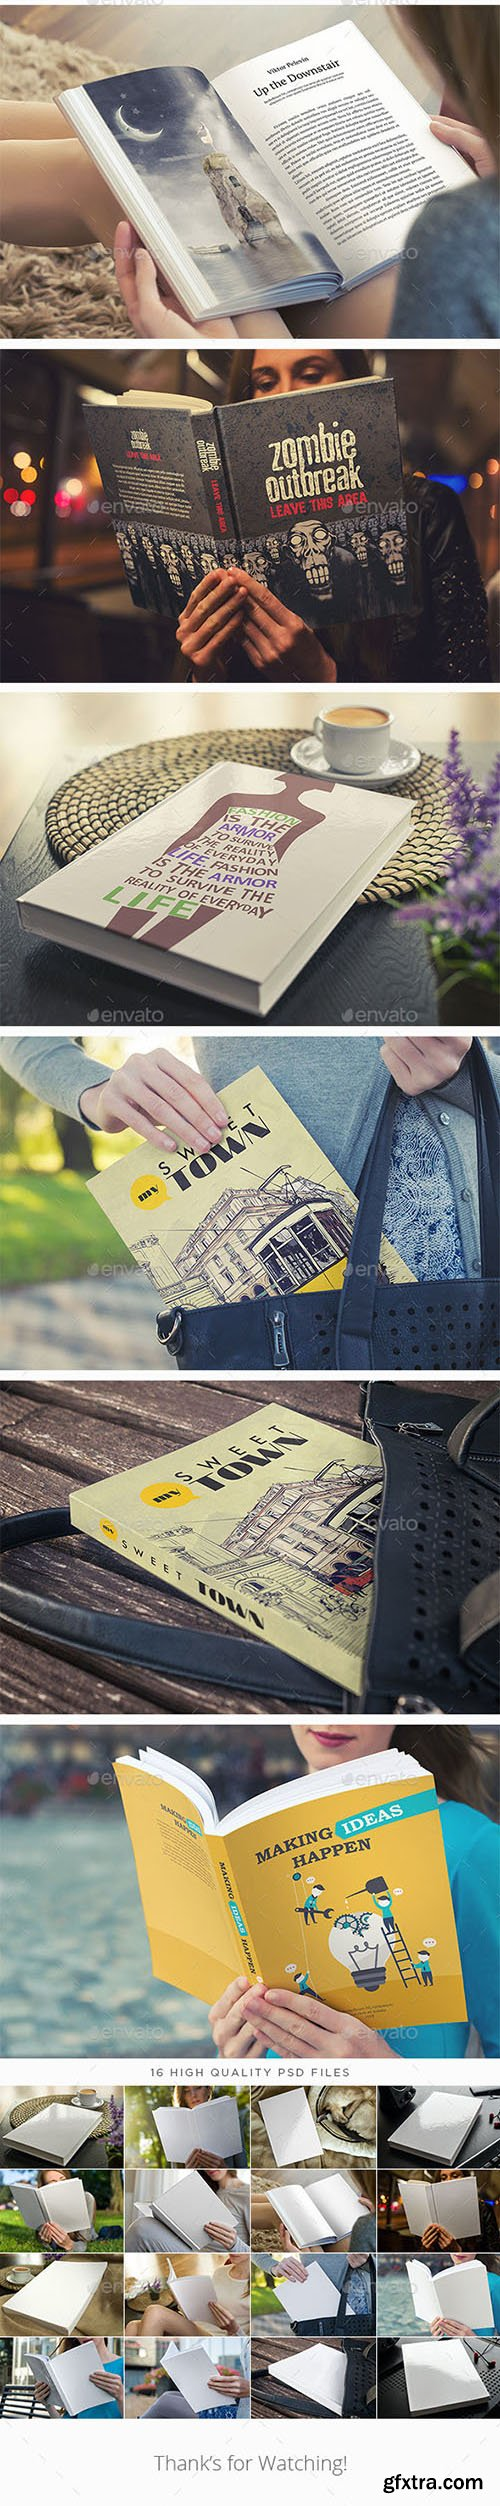 GraphicRiver: Book Mock-Up Bundle 1093853